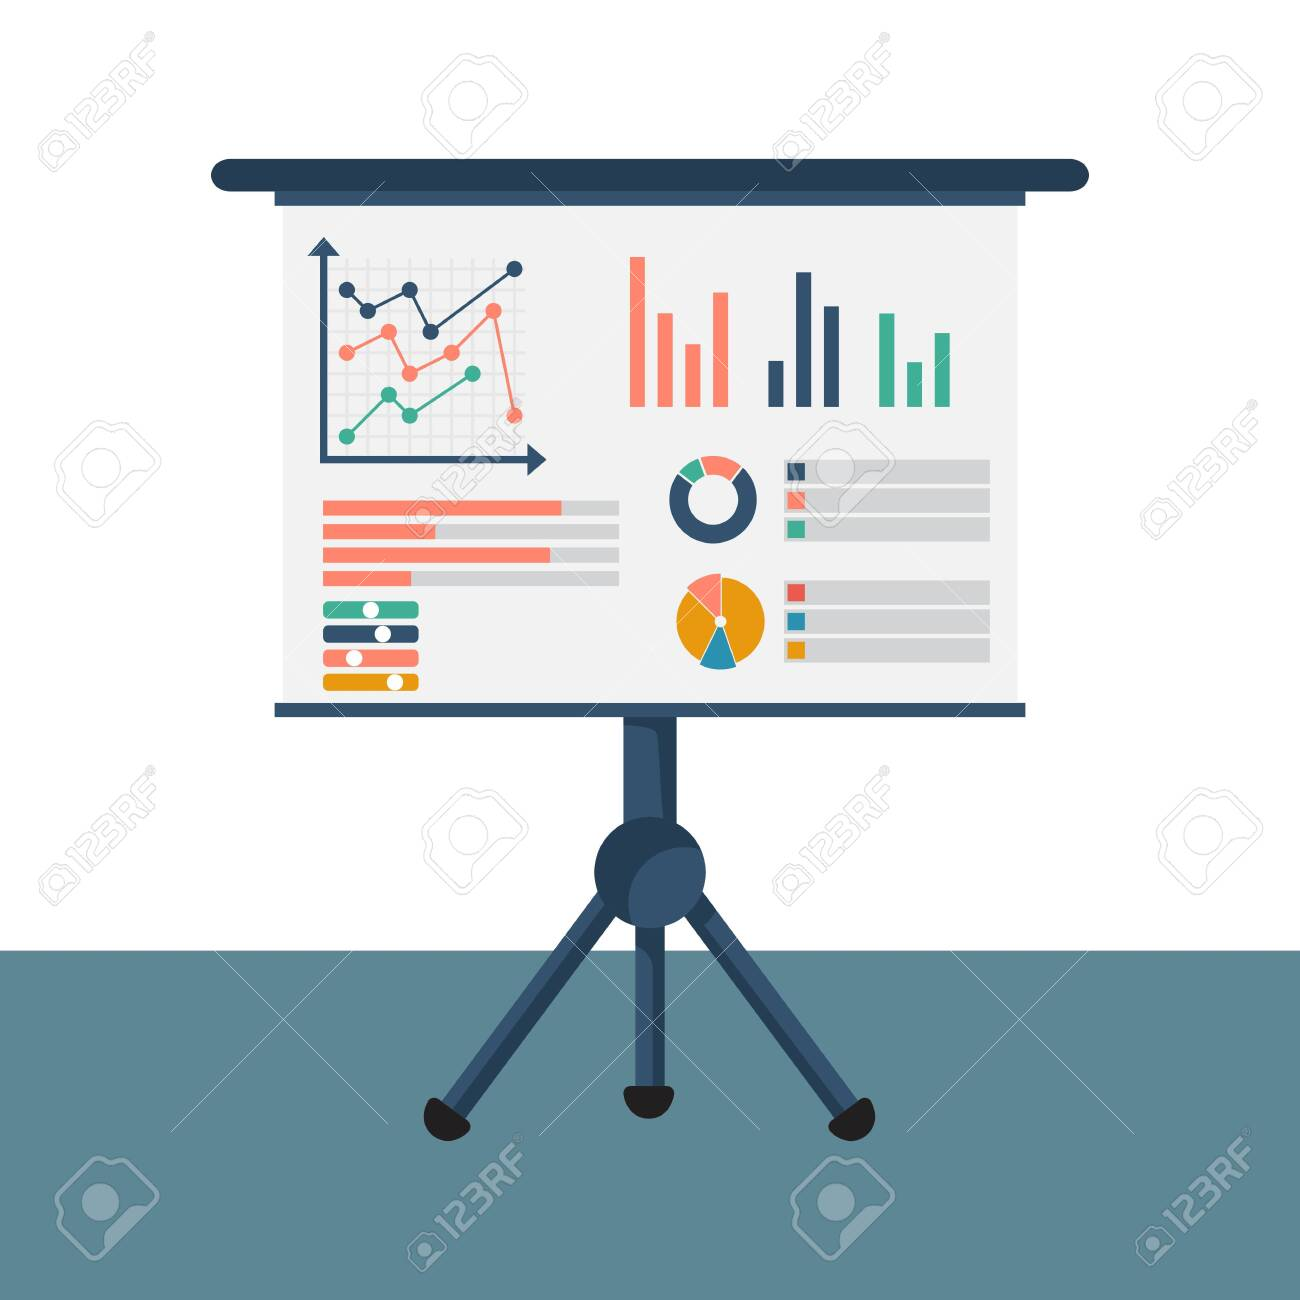 Financial consultant concept. Reasearch graph amrket, charts financial reports, diagrams. Accountant organization process. Vector illustration - 122163497